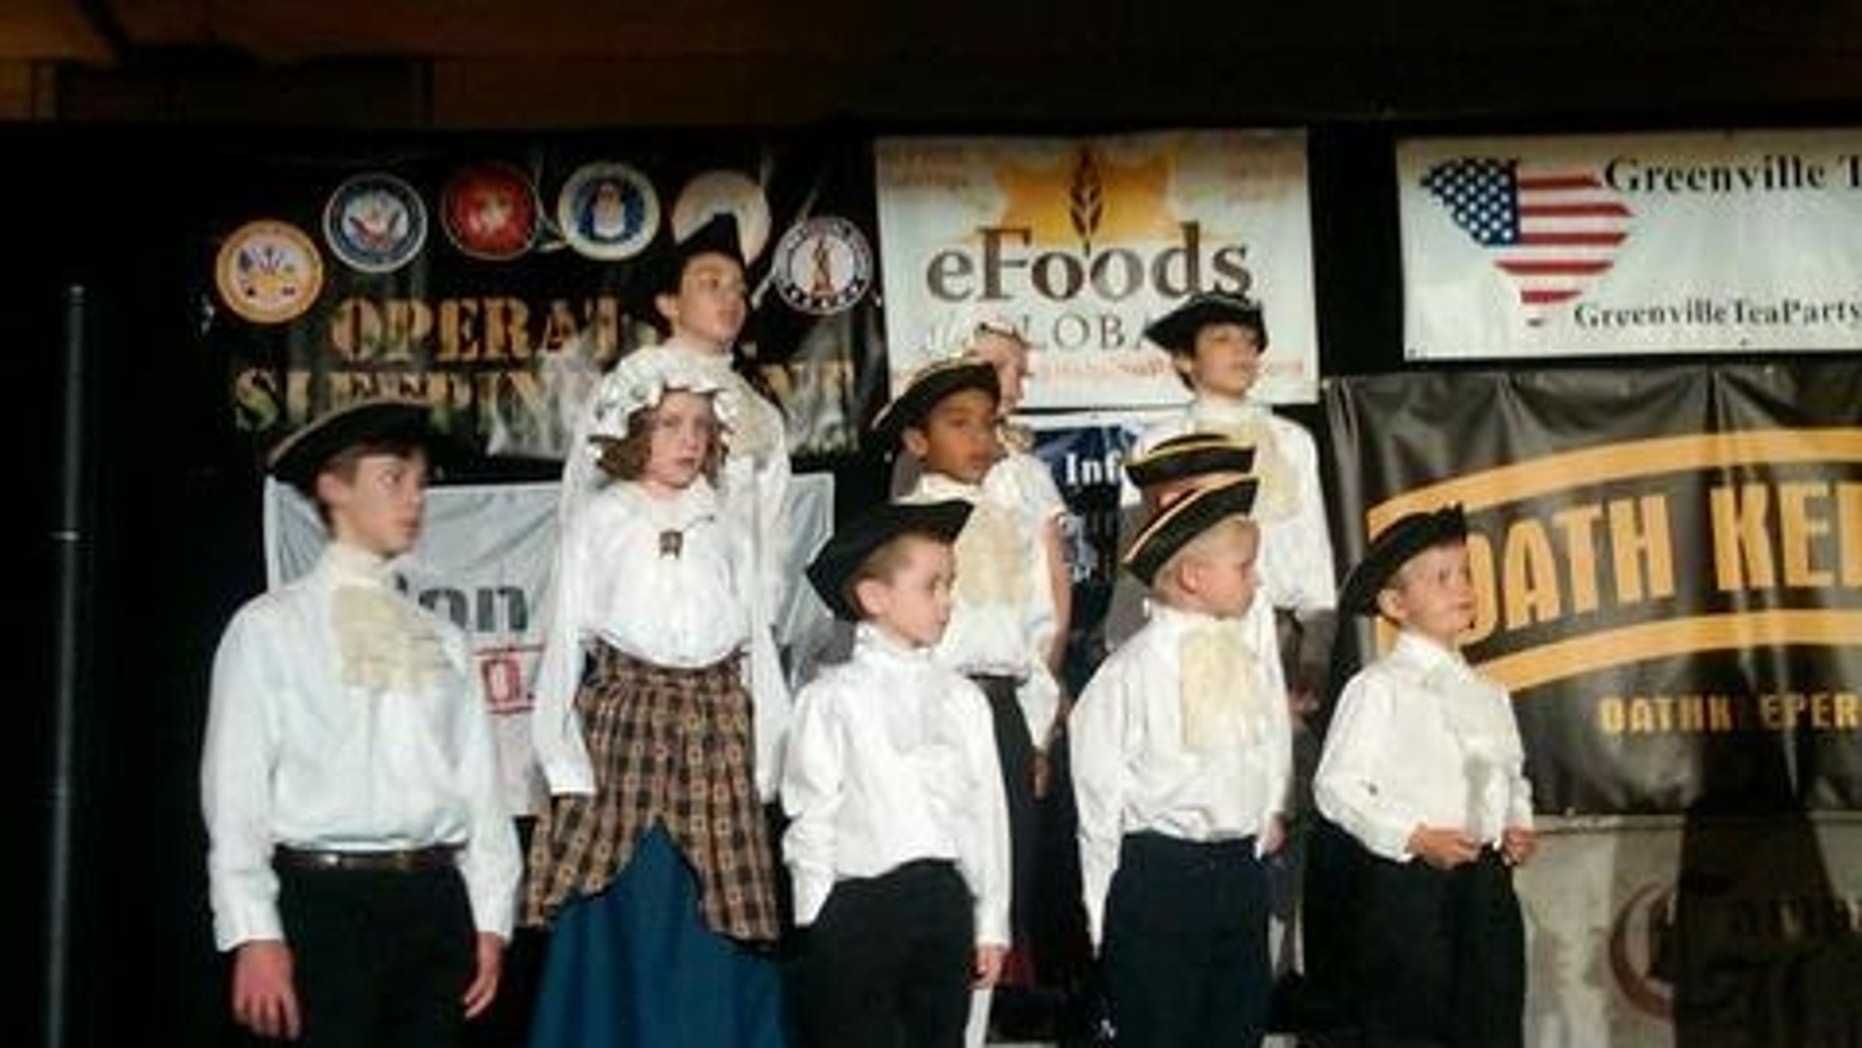 """Children in period costume sing patriotic songs at the Greenville Tea Party """"Freedom Rally."""" (Fox News Photo)"""